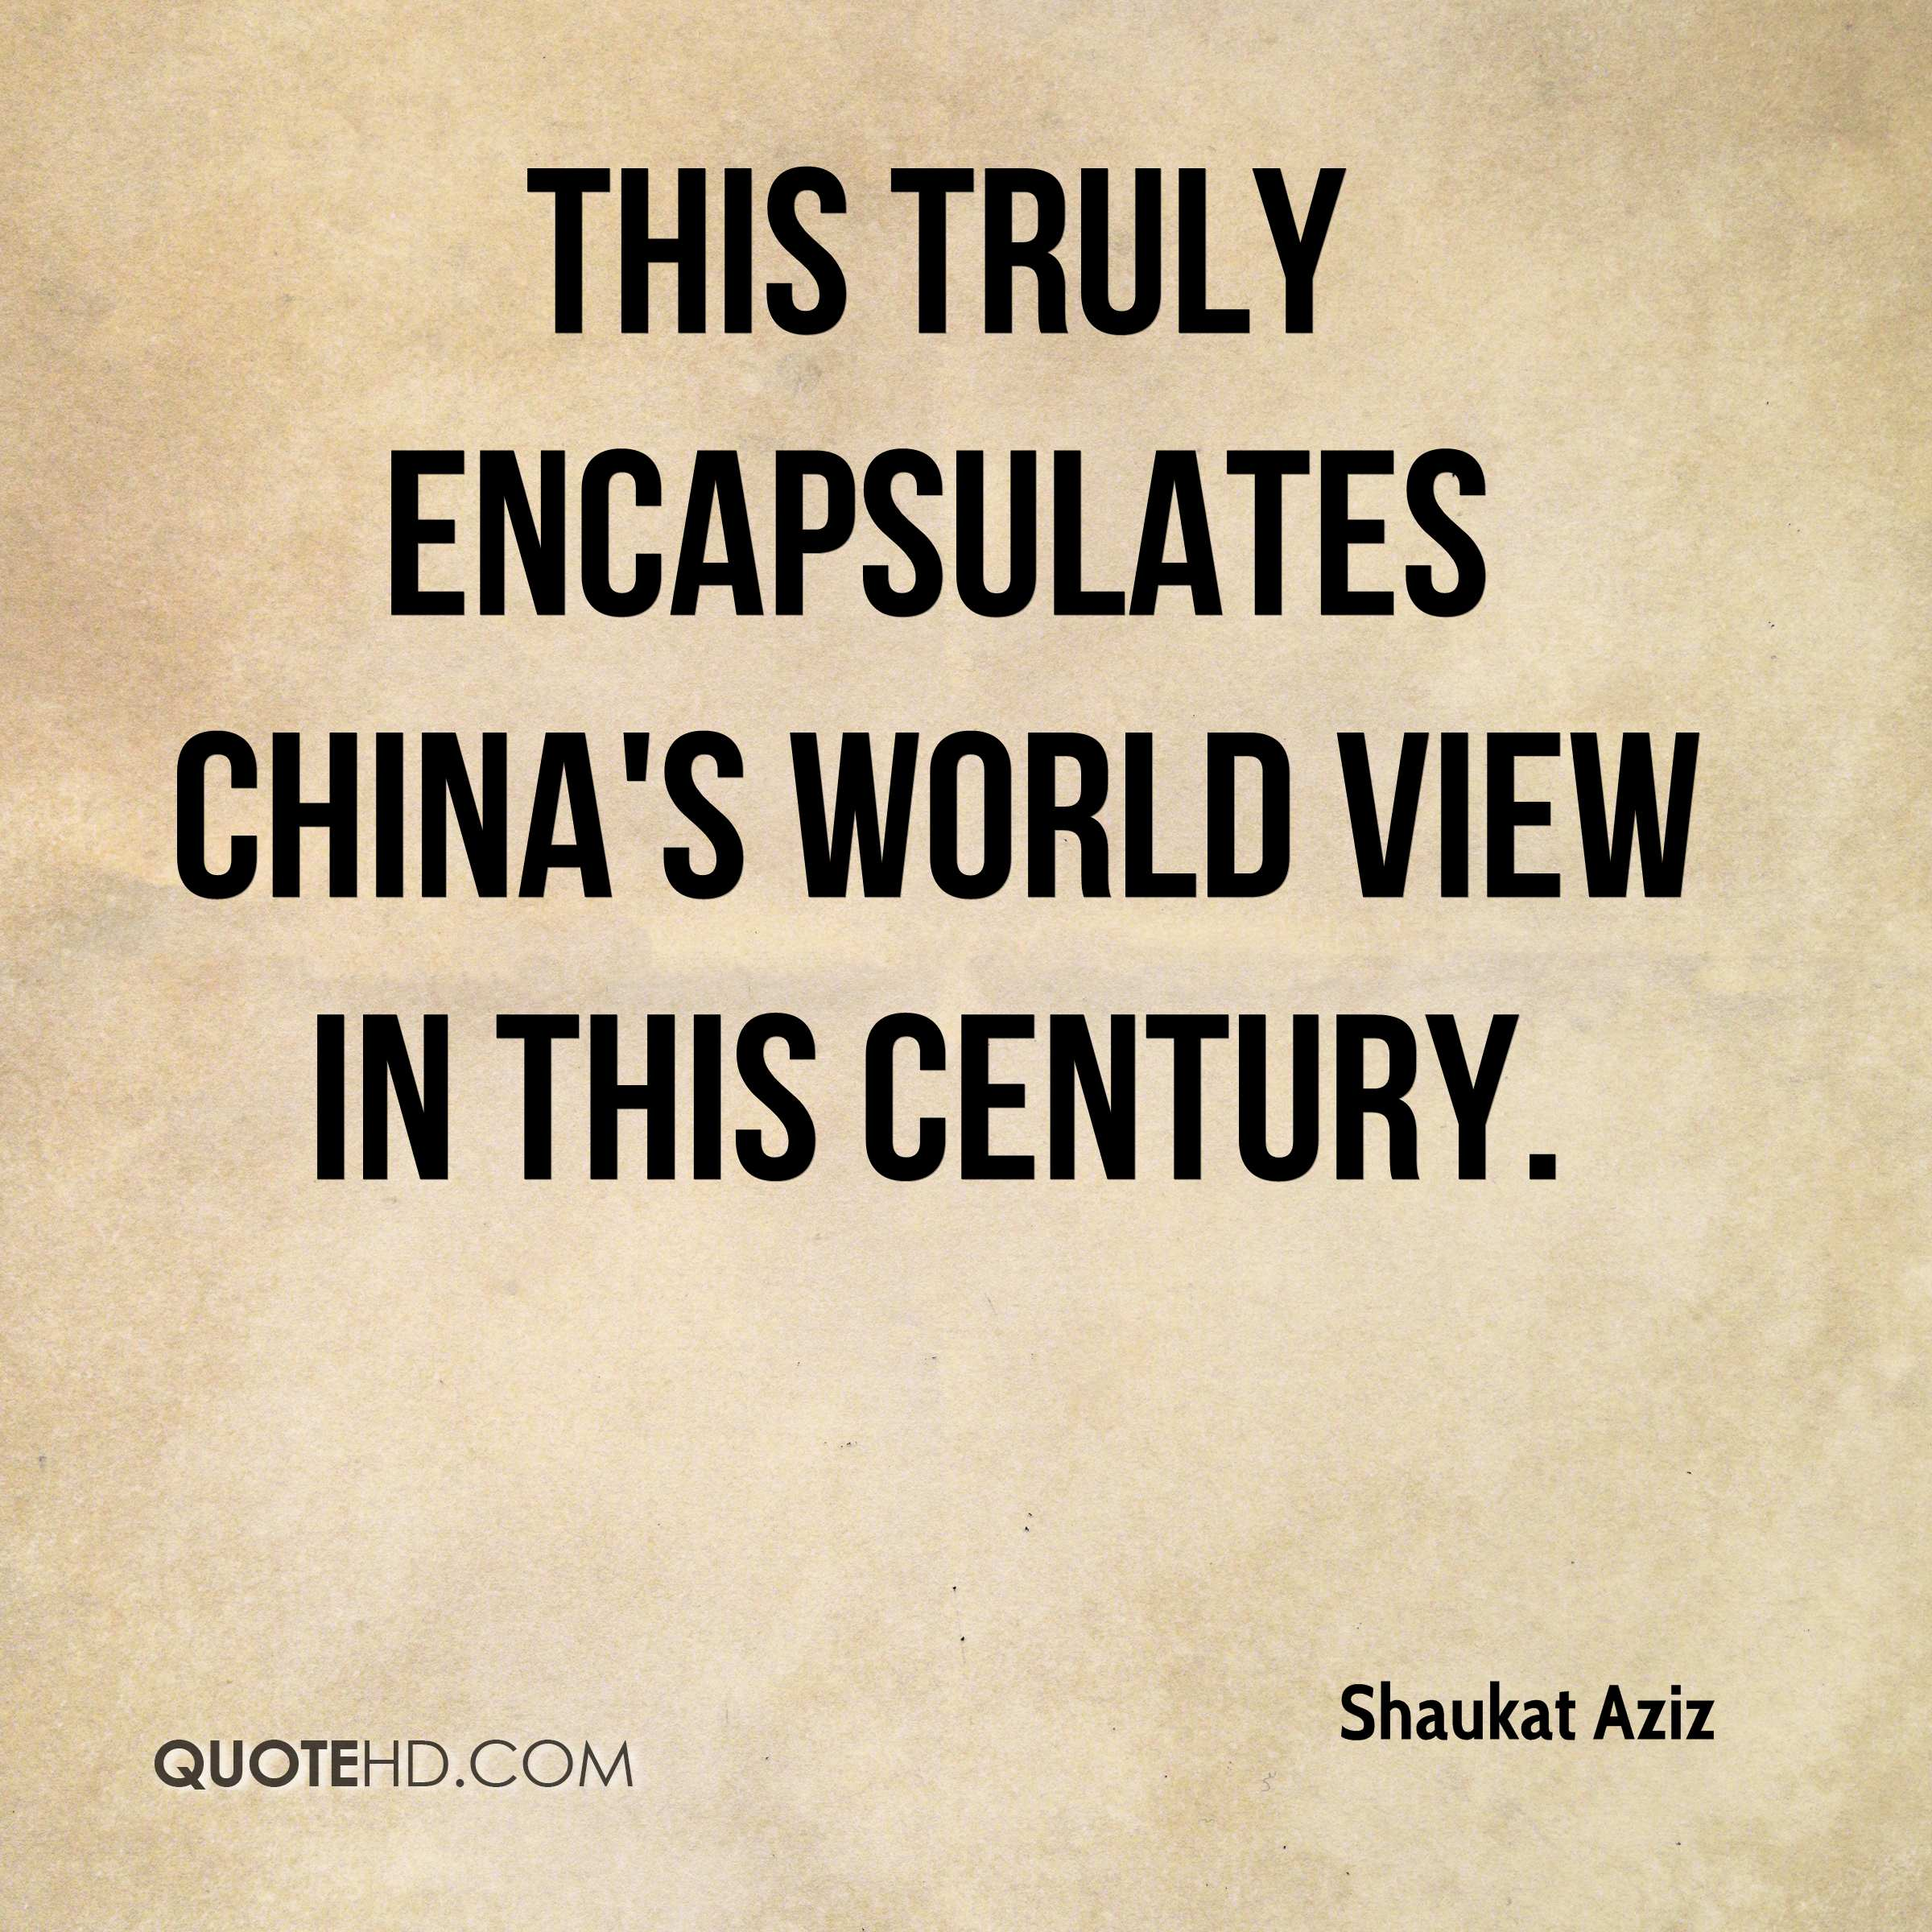 This truly encapsulates China's world view in this century.